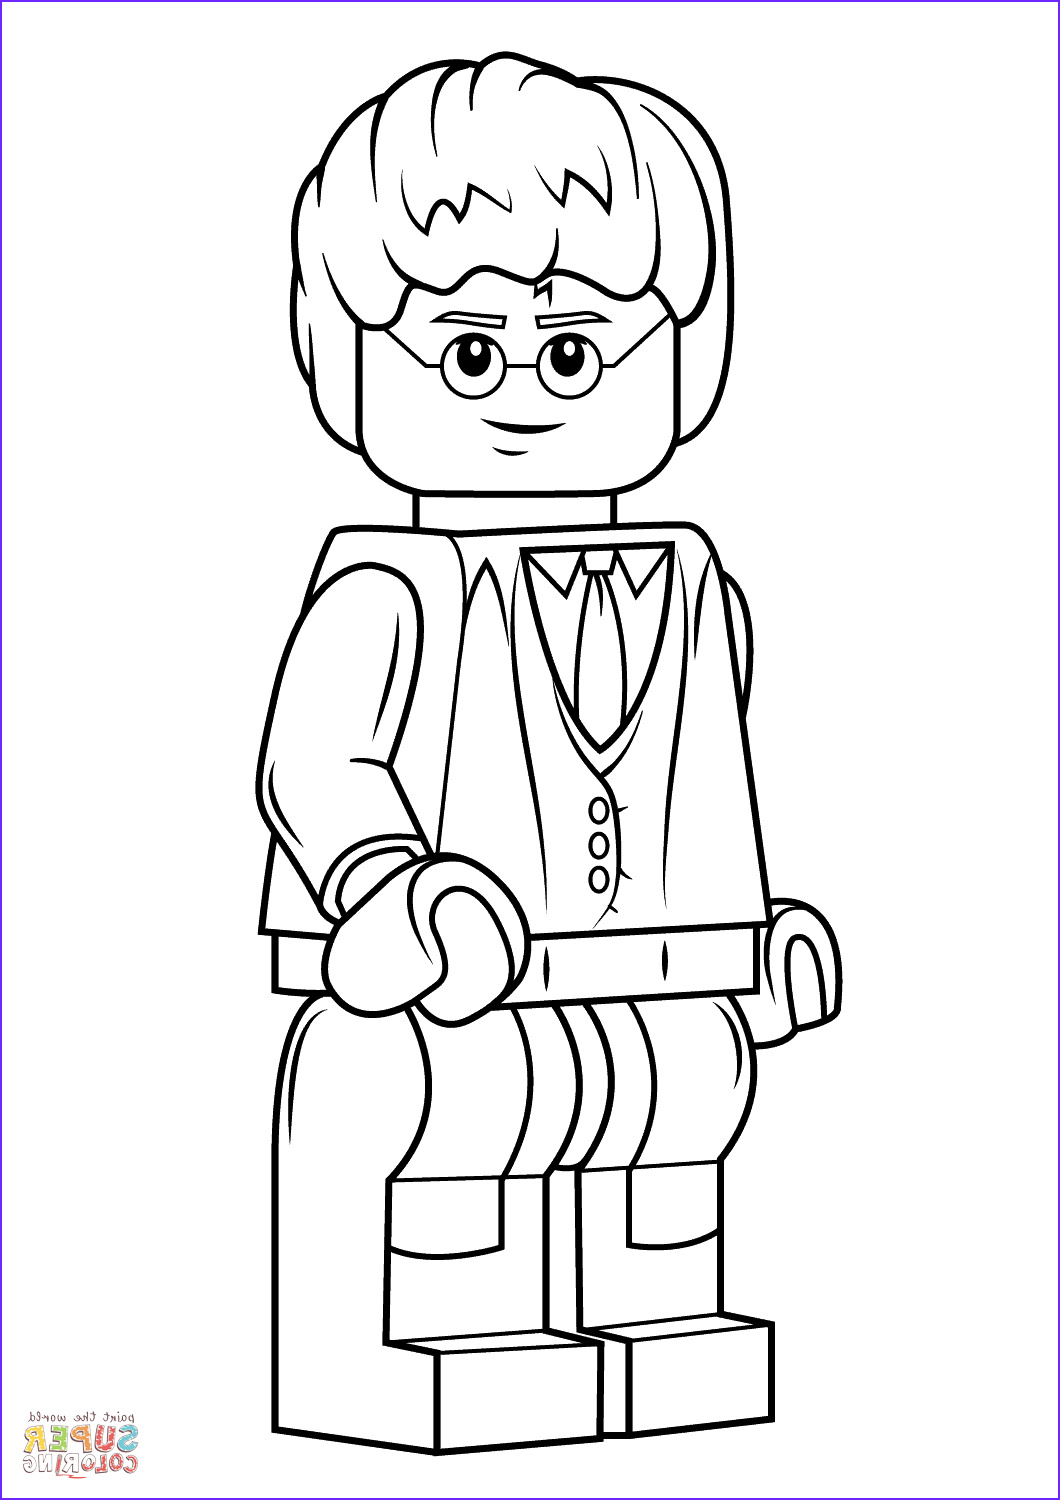 Harry Potter Coloring Best Of Stock Lego Harry Potter Coloring Page